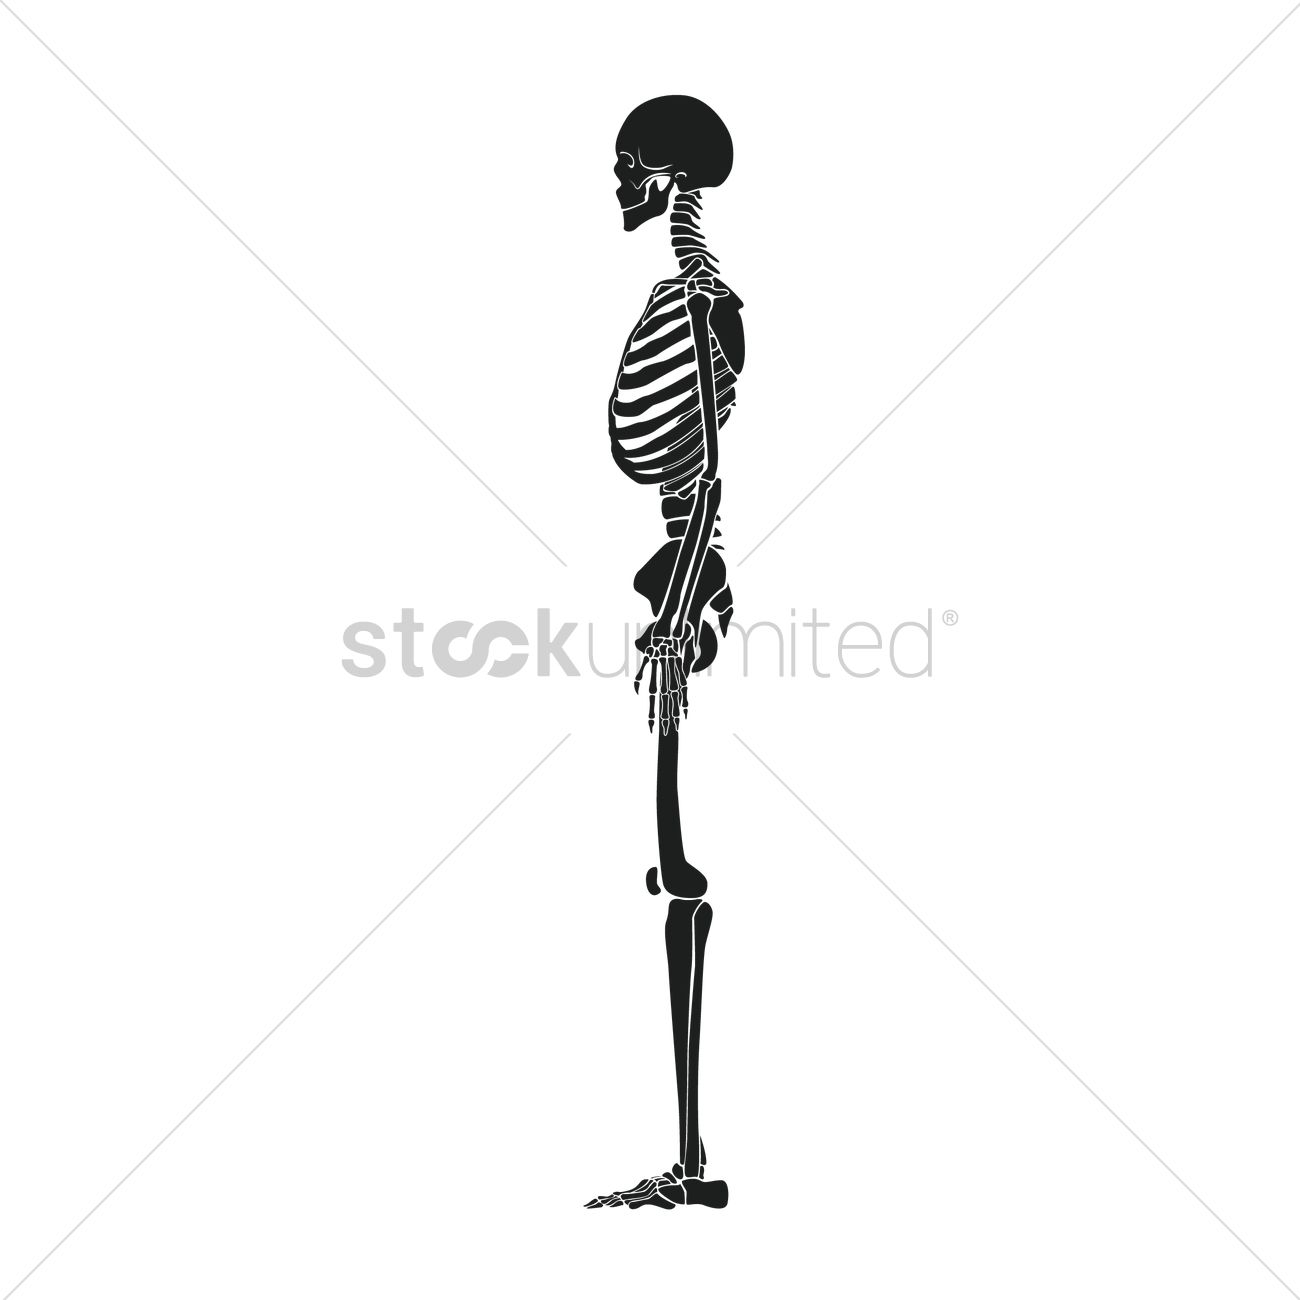 Side View Of Human Skeleton Vector Image 1516129 Stockunlimited